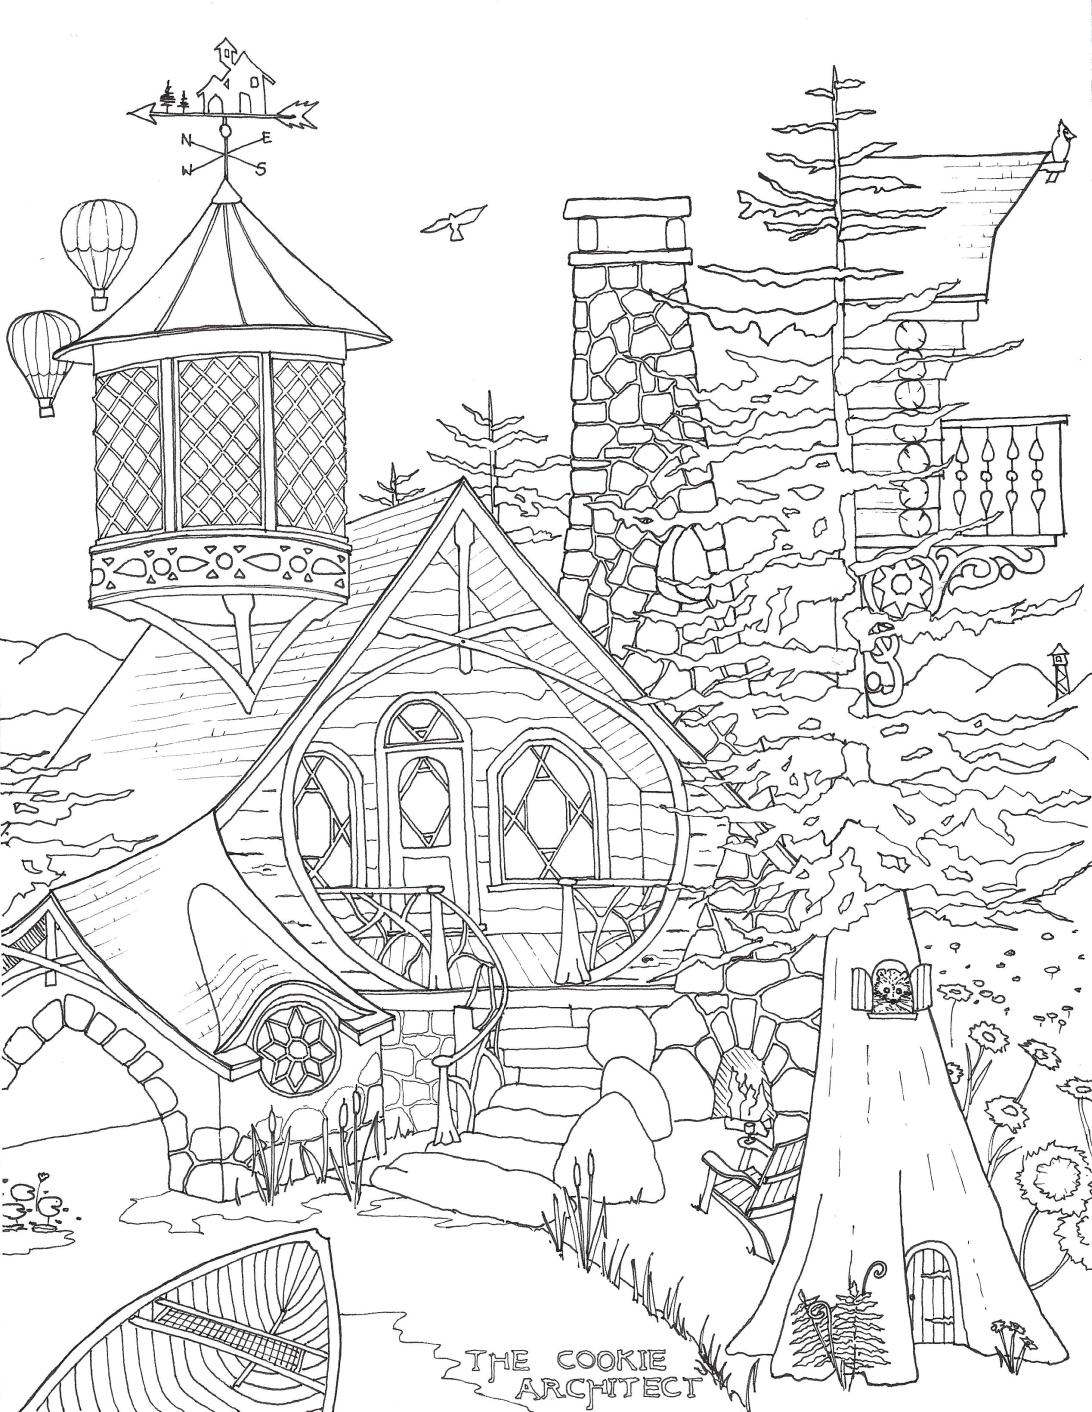 ADK Coloring Page